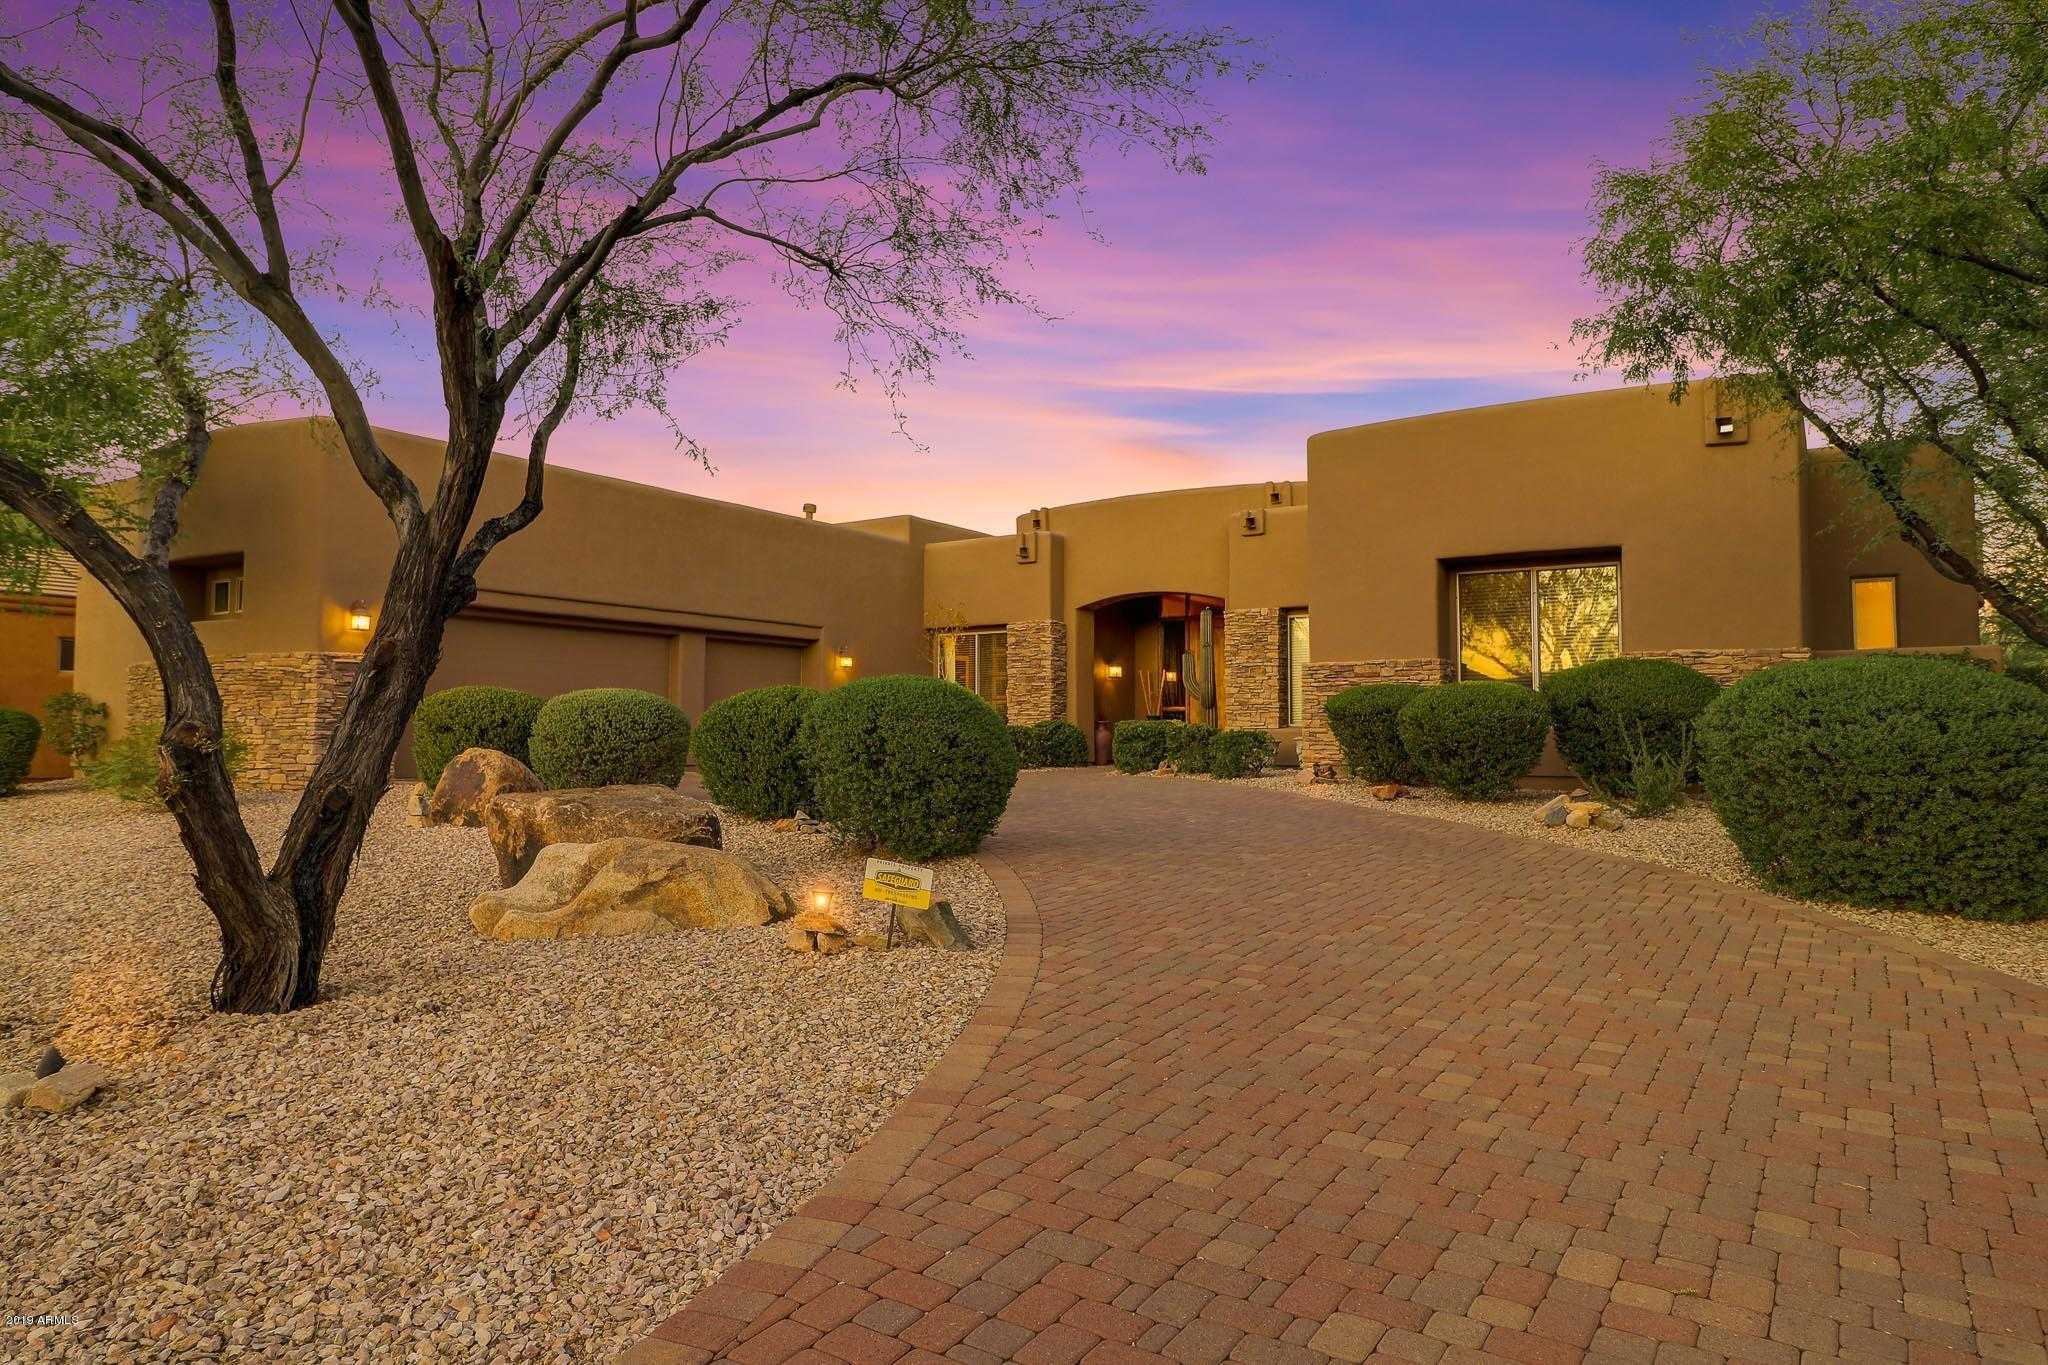 $1,350,000 - 5Br/5Ba - Home for Sale in Ancala, Scottsdale